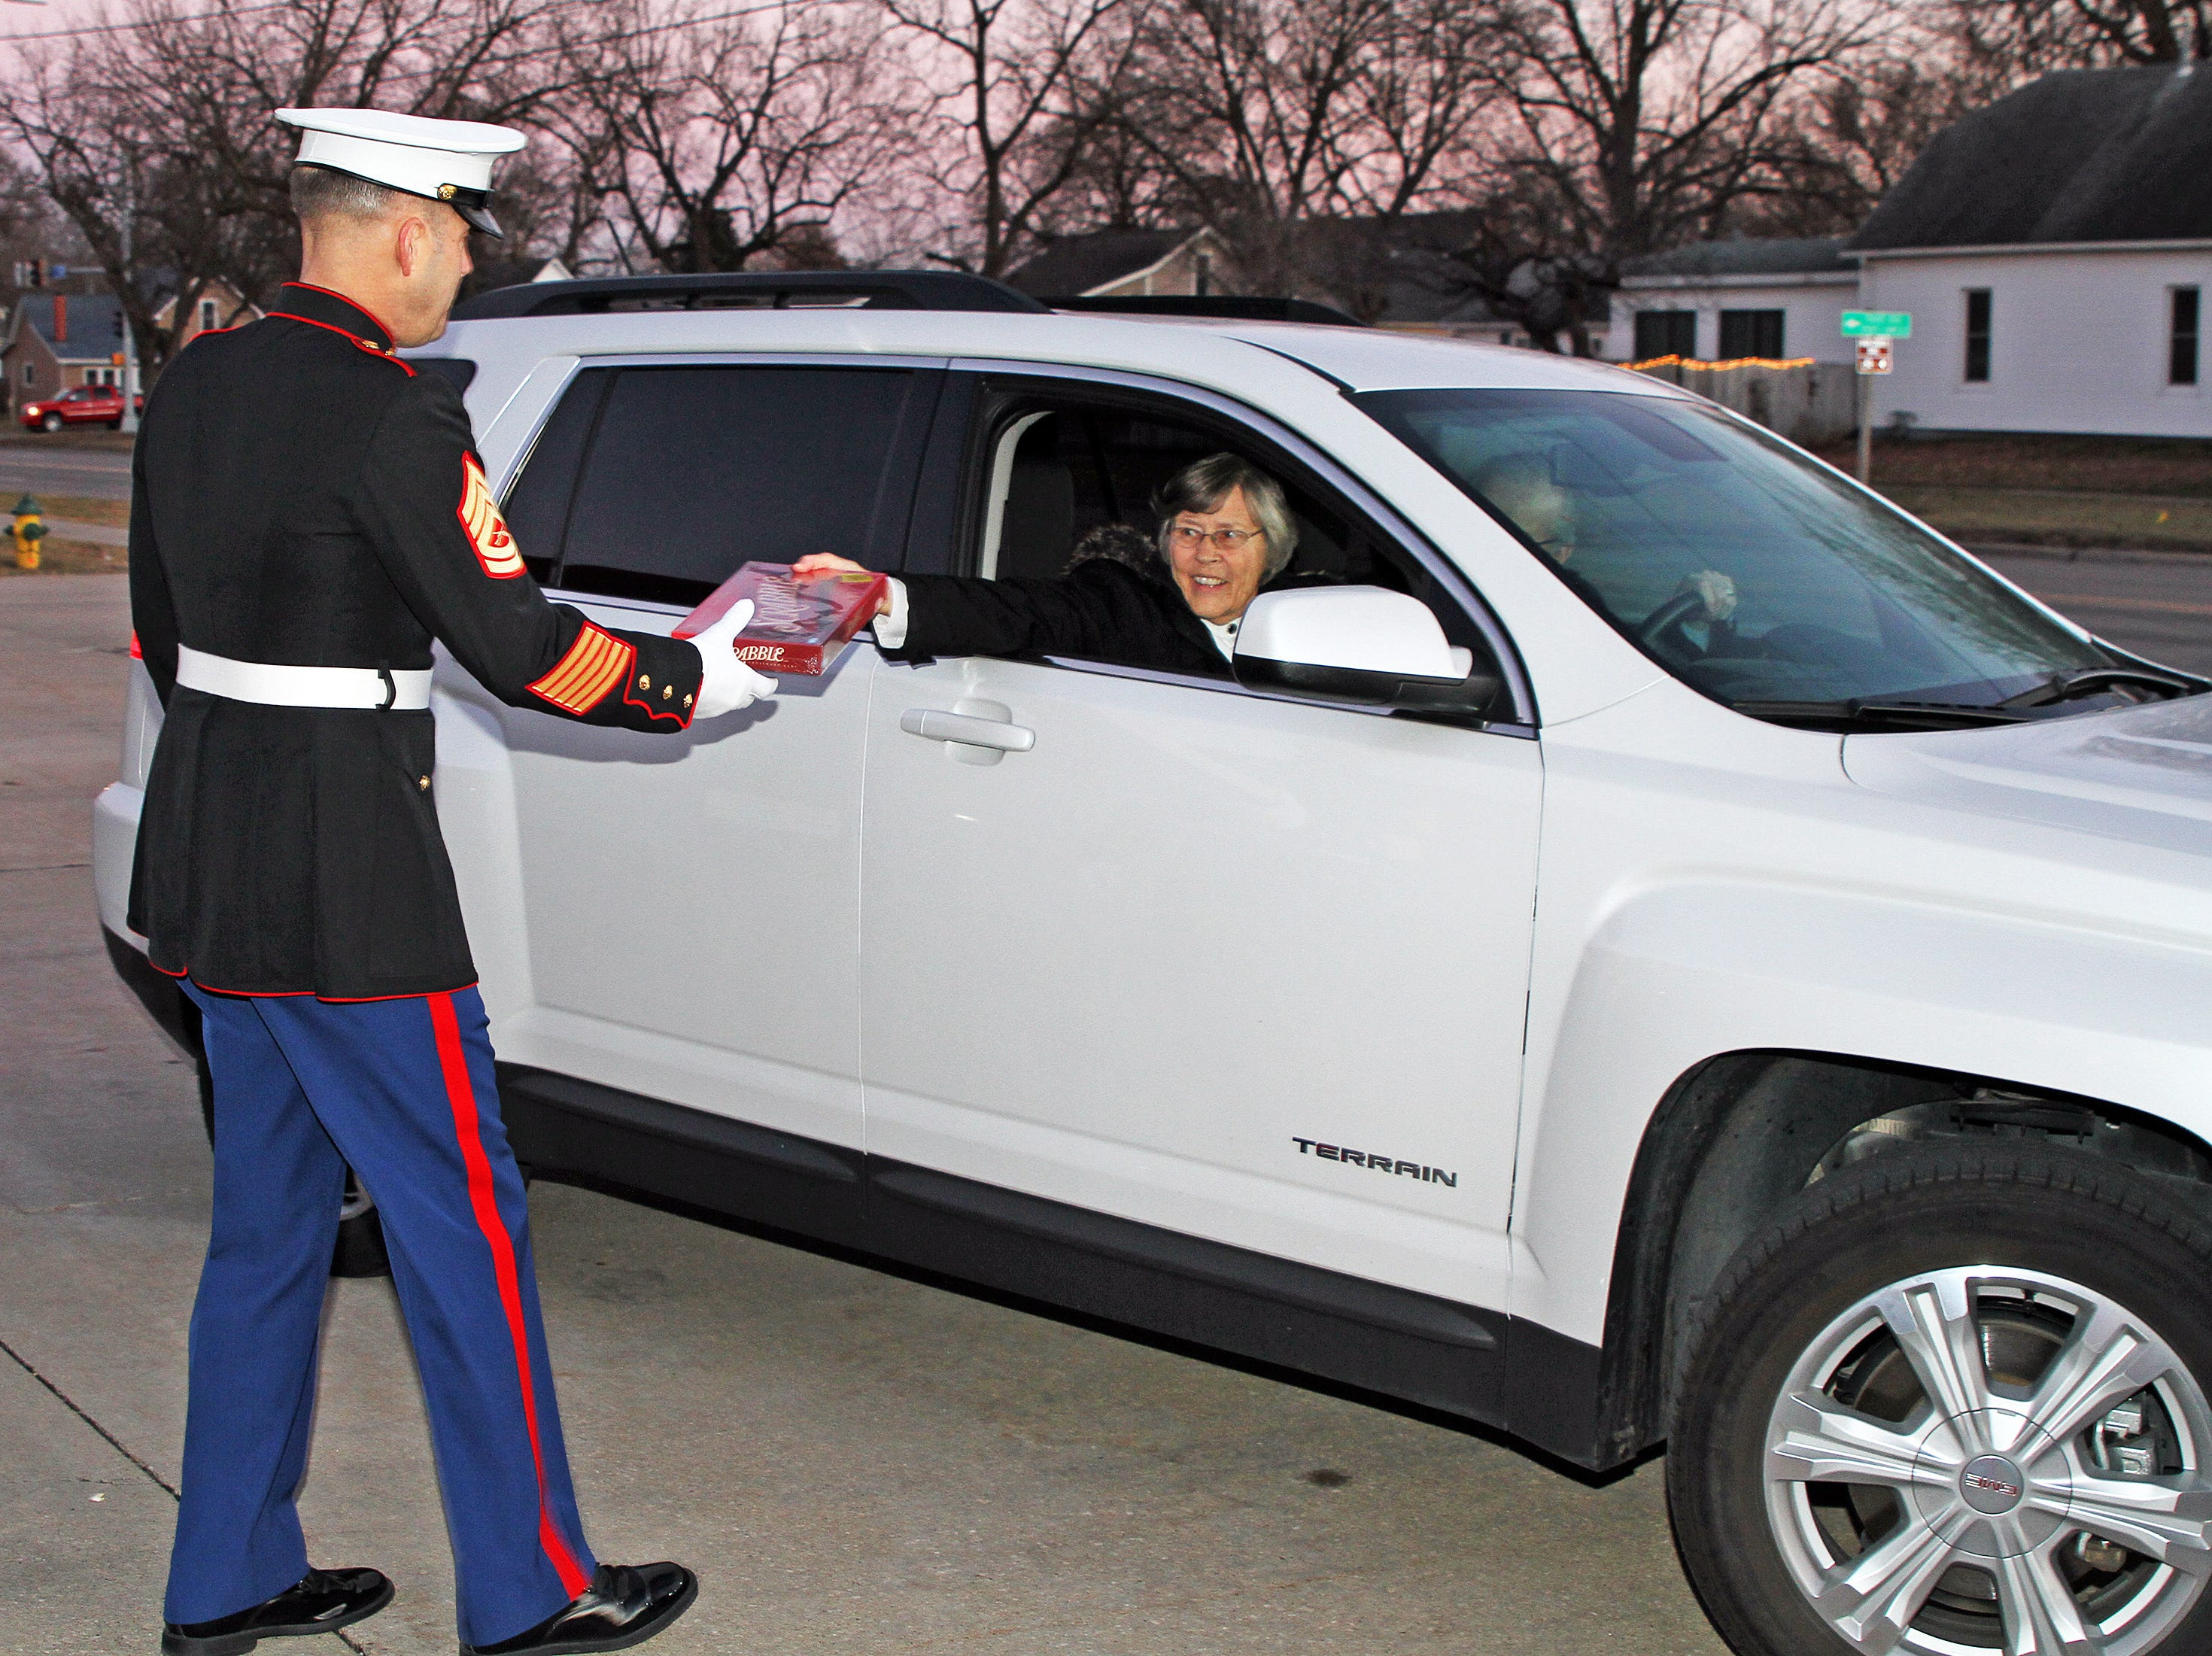 Retired Marine Gunnery Sgt. Mark Amann, current member of the Ankeny Fire Department, greets people as gifts are dropped off at Ankeny's fill the truck day during the U.S. Marine Corps Toys for Tots campaign at the Ankeny Fire Station Headquarters on Sunday, Dec. 16, 2018.